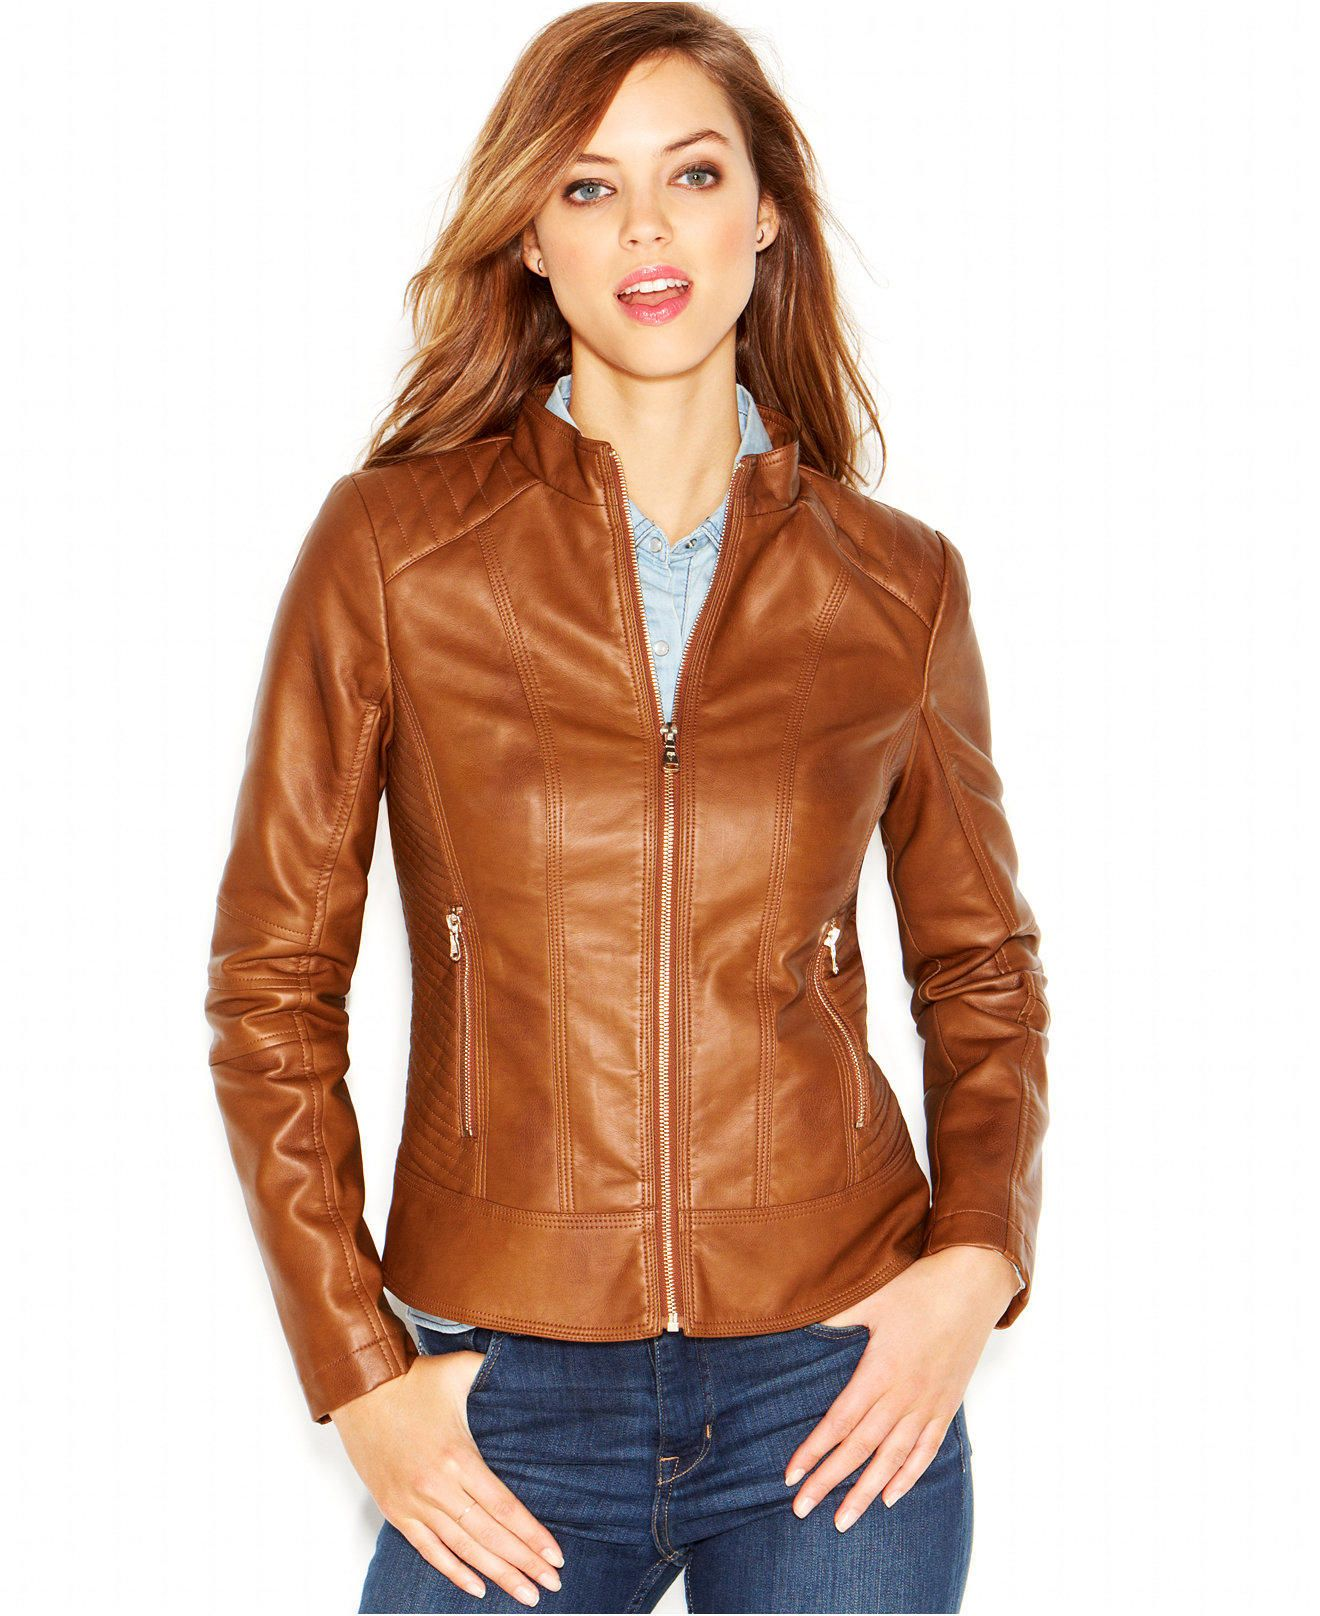 in miss lyst black jacket gallery normal women quilt faux selfridge clothing product quilted s jackets leather